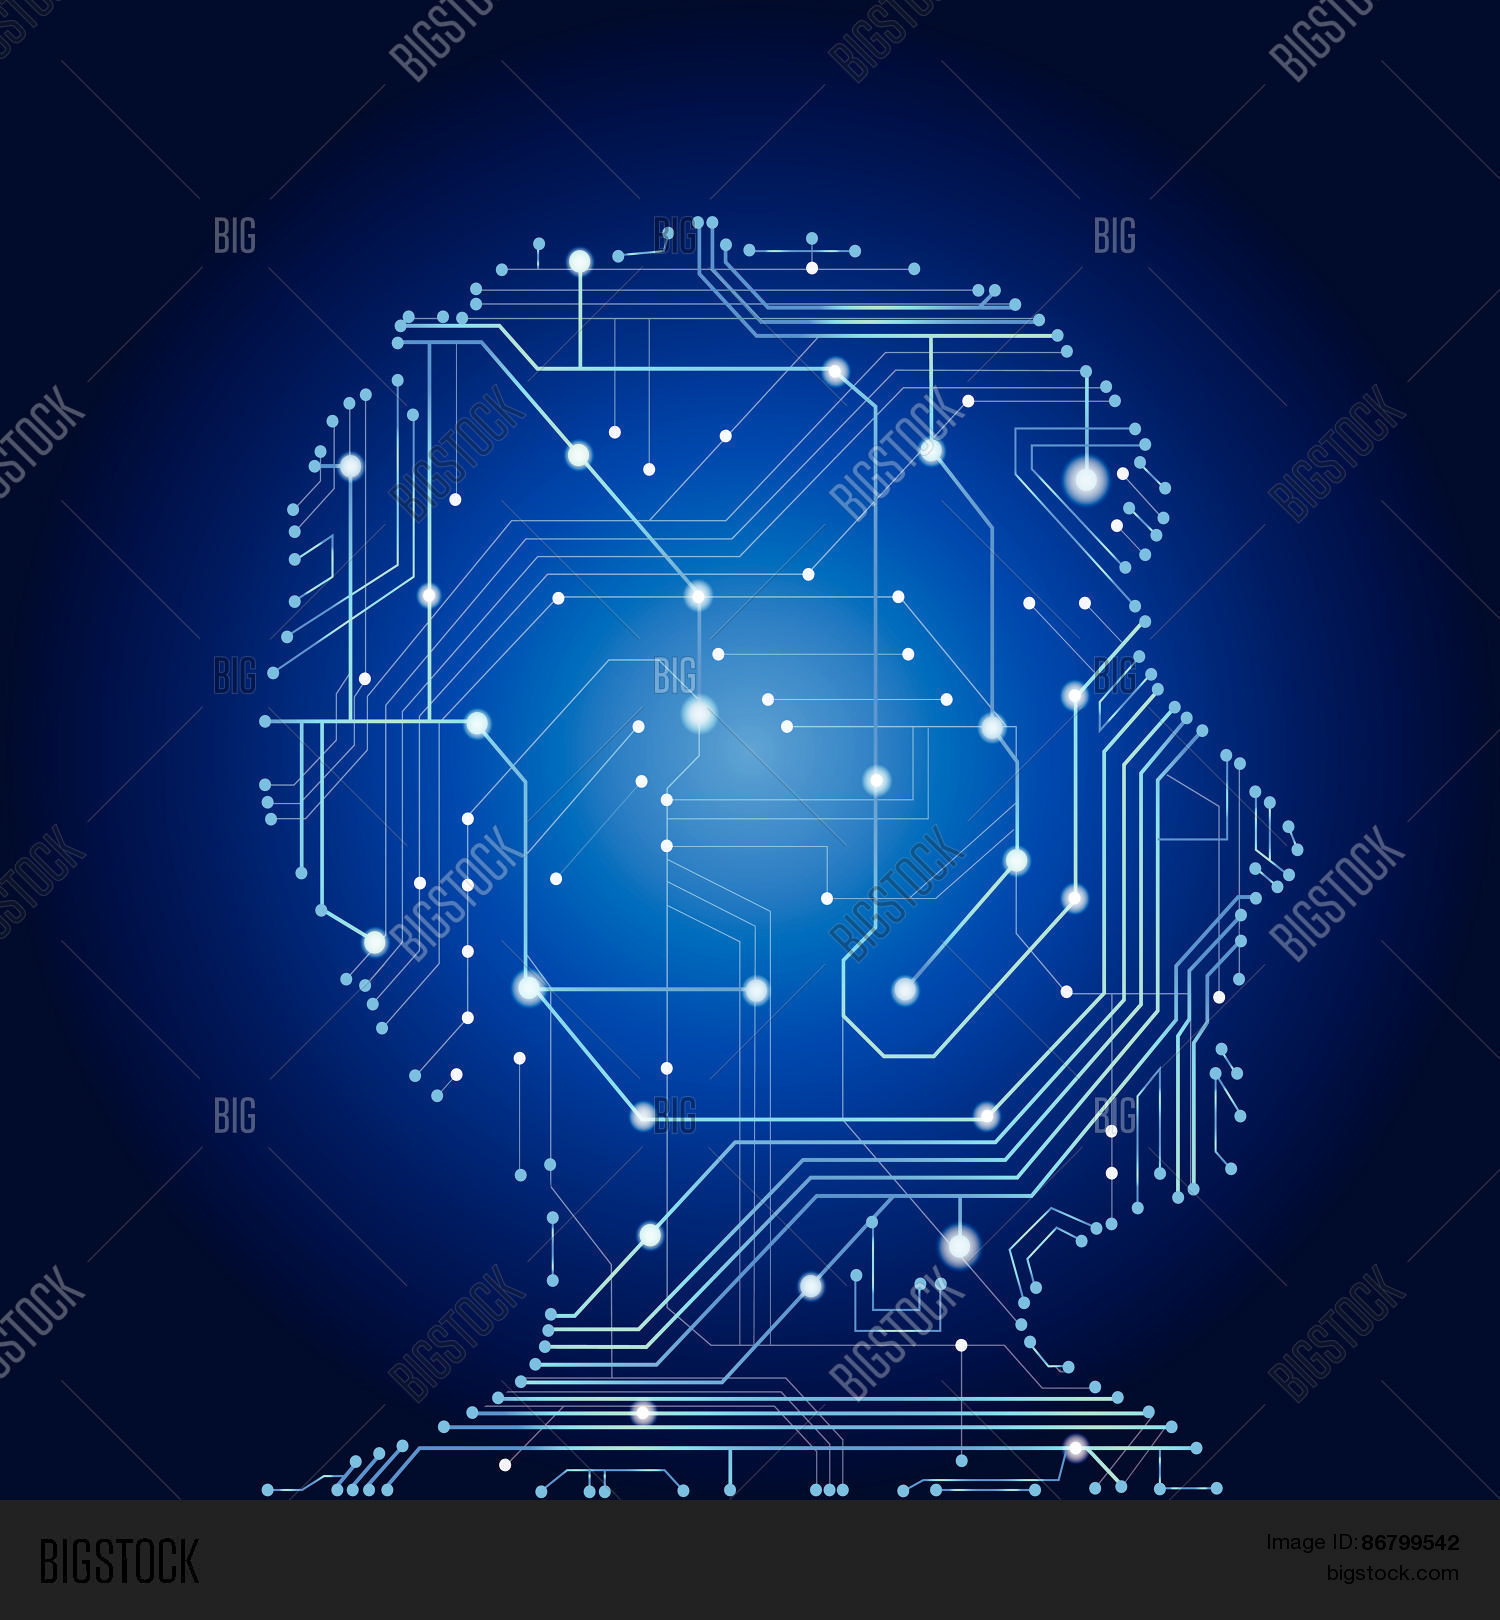 side vector circboard wiring diagram technology man vector   photo  free trial  bigstock  man vector   photo  free trial